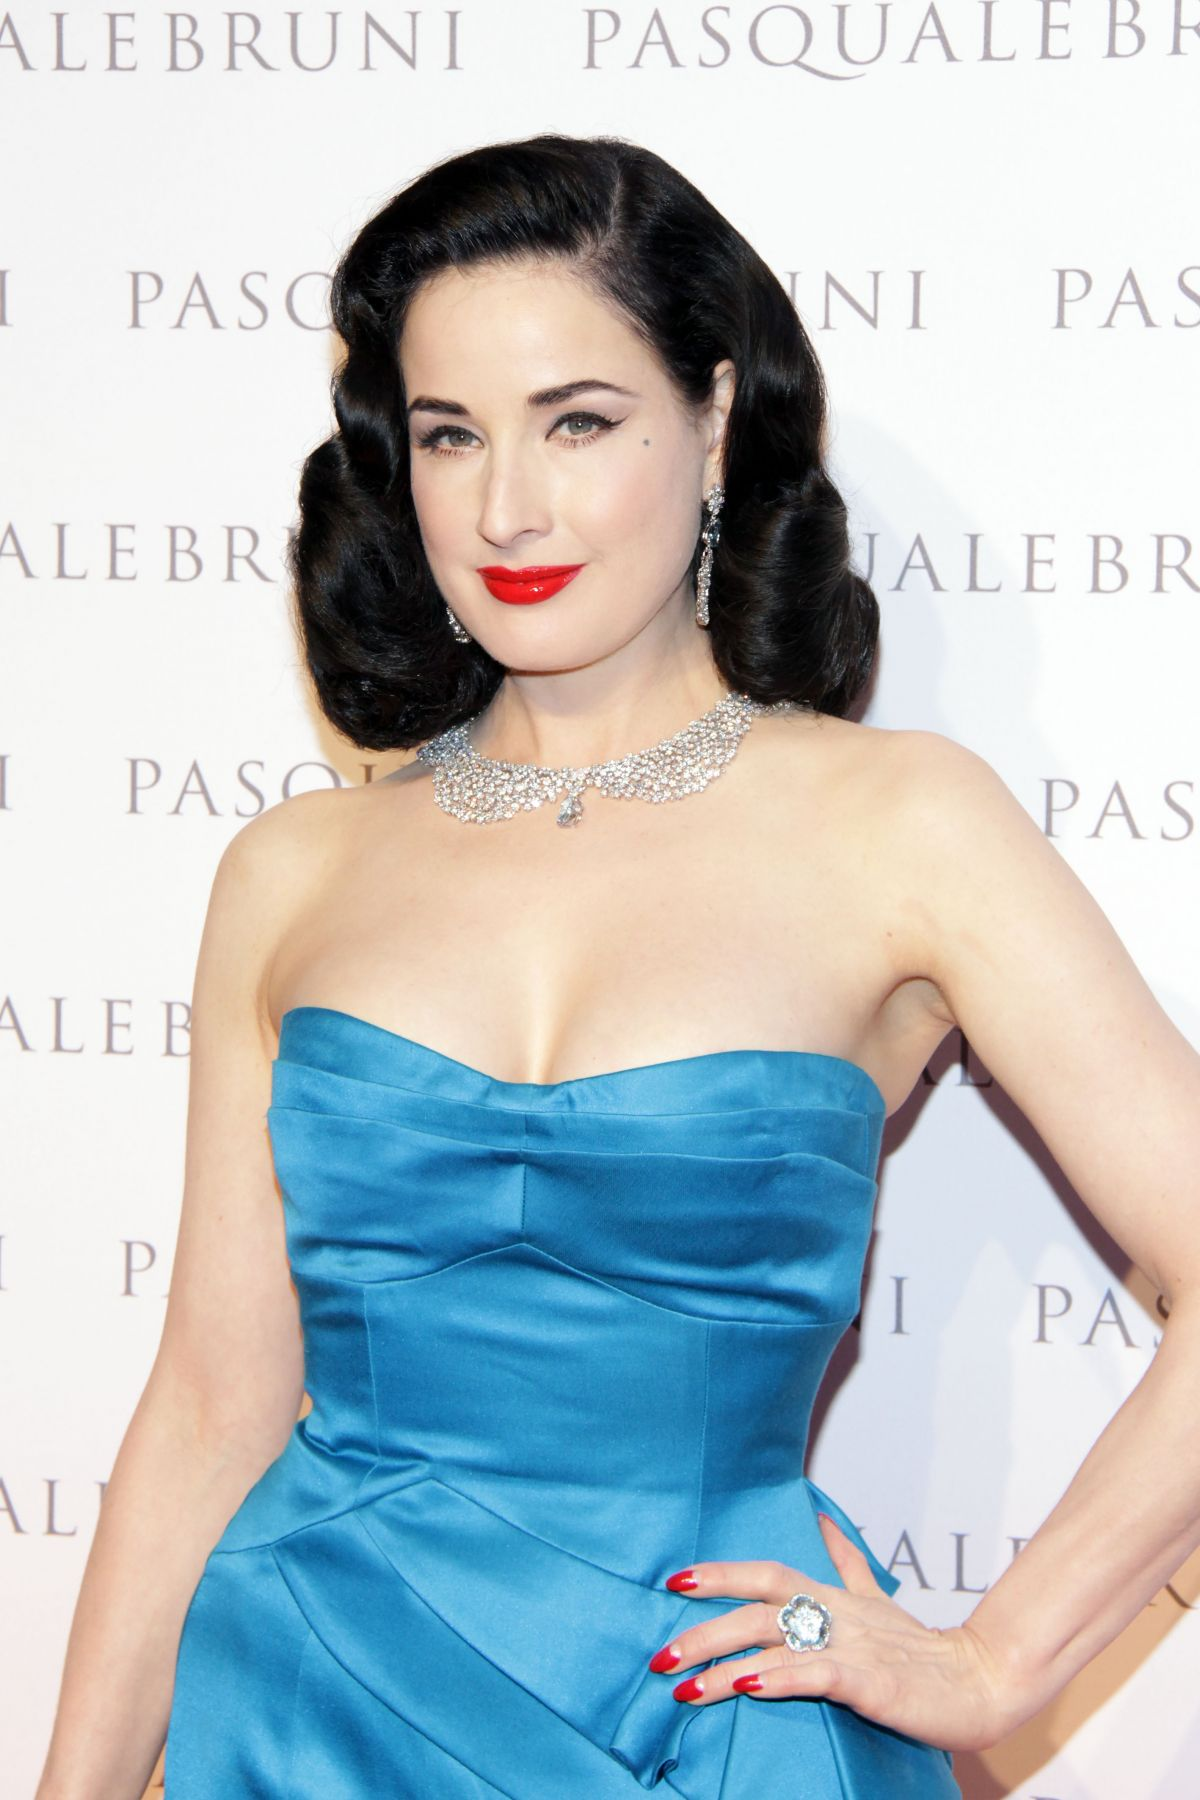 DITA VON TEESE at Pasquale Bruni Secret Gardens Collection Cocktail ... Dita Von Teese